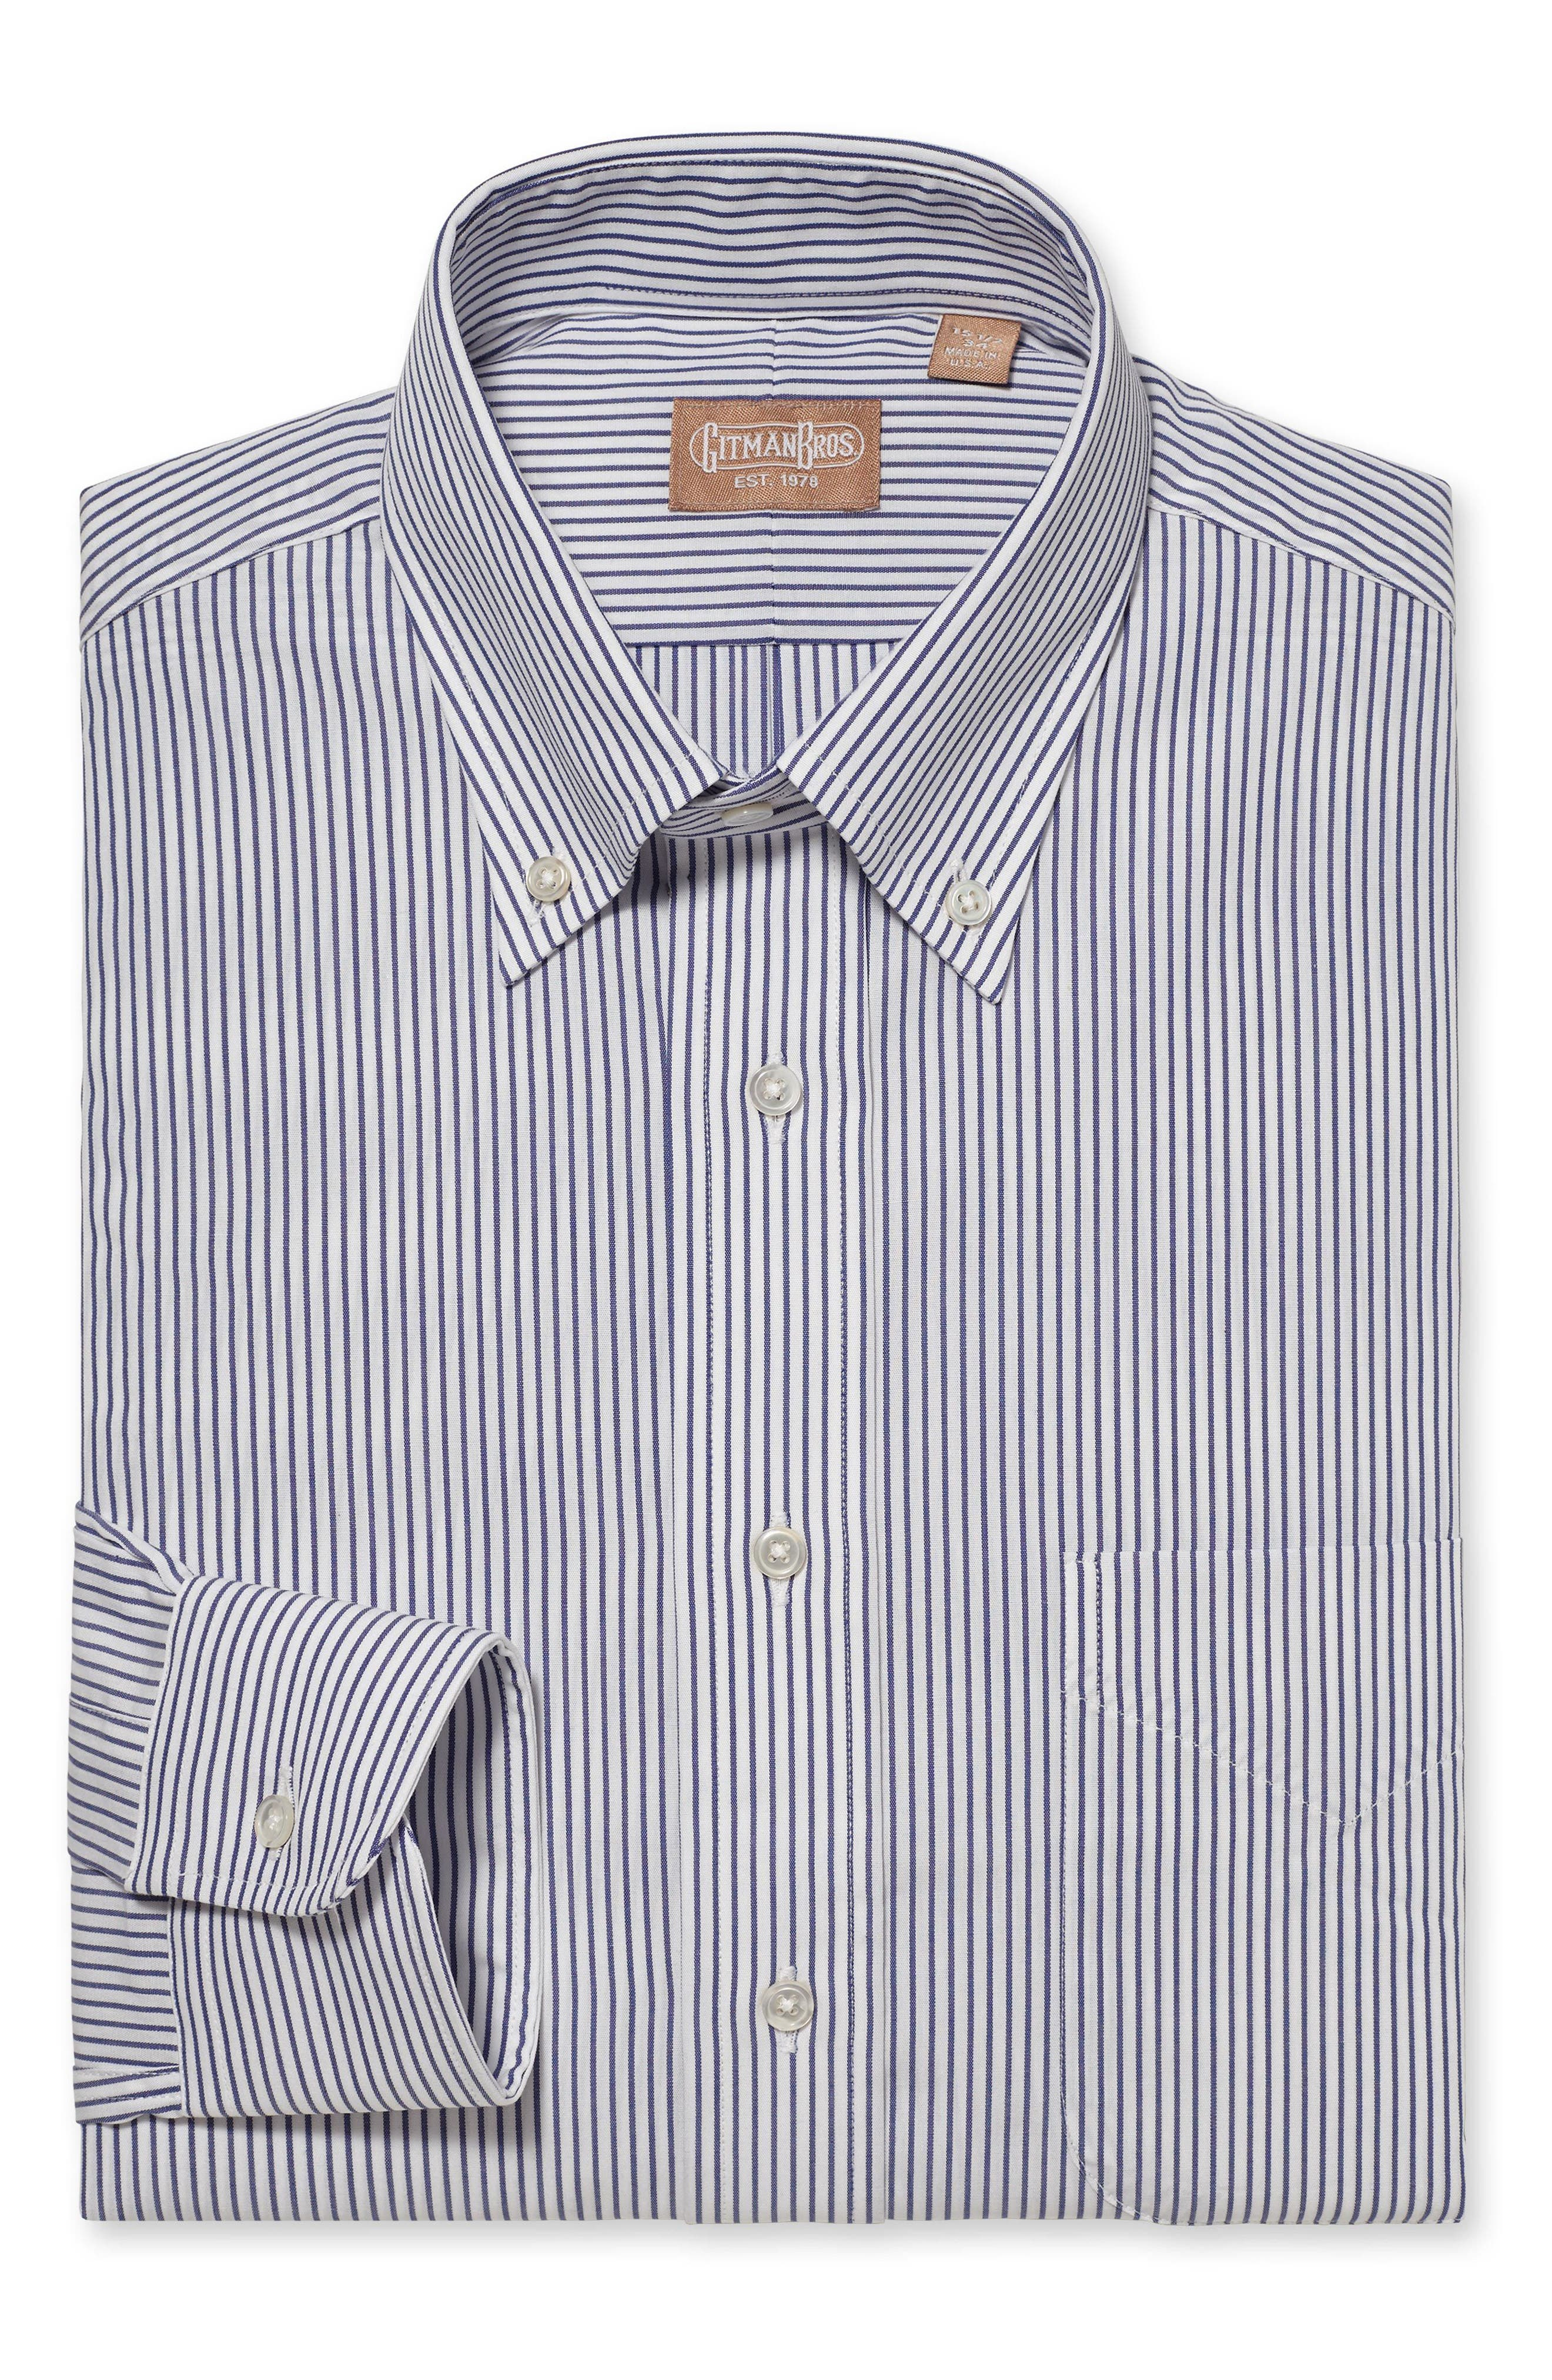 Regular Fit Stripe Dress Shirt,                             Main thumbnail 1, color,                             Navy